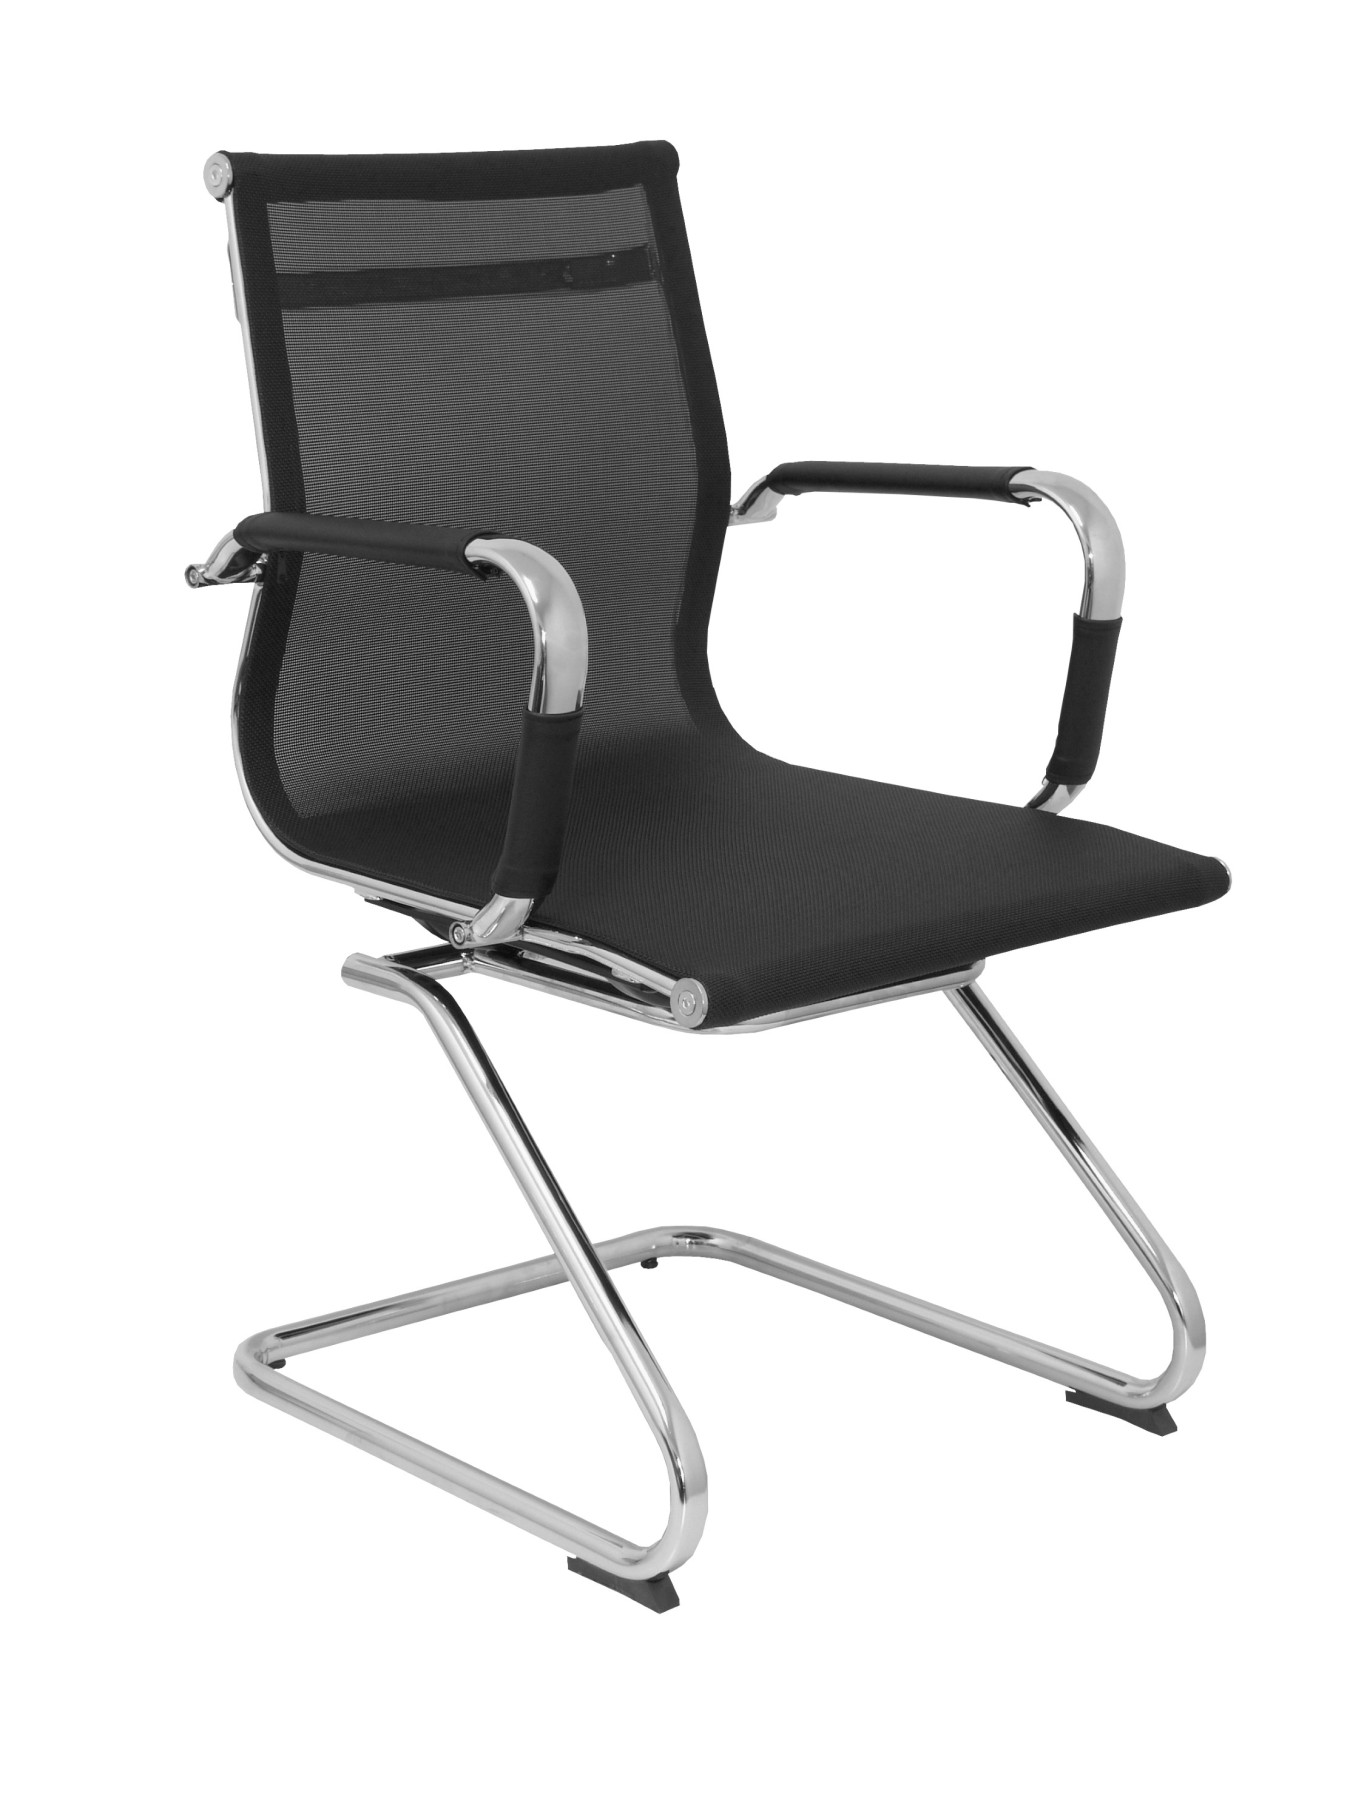 Chair's Office's Confidant And Desk Ergonomic With Chrome Respaldo Skate And Seat Mesh Black Color TAPHOLE AND CURLED